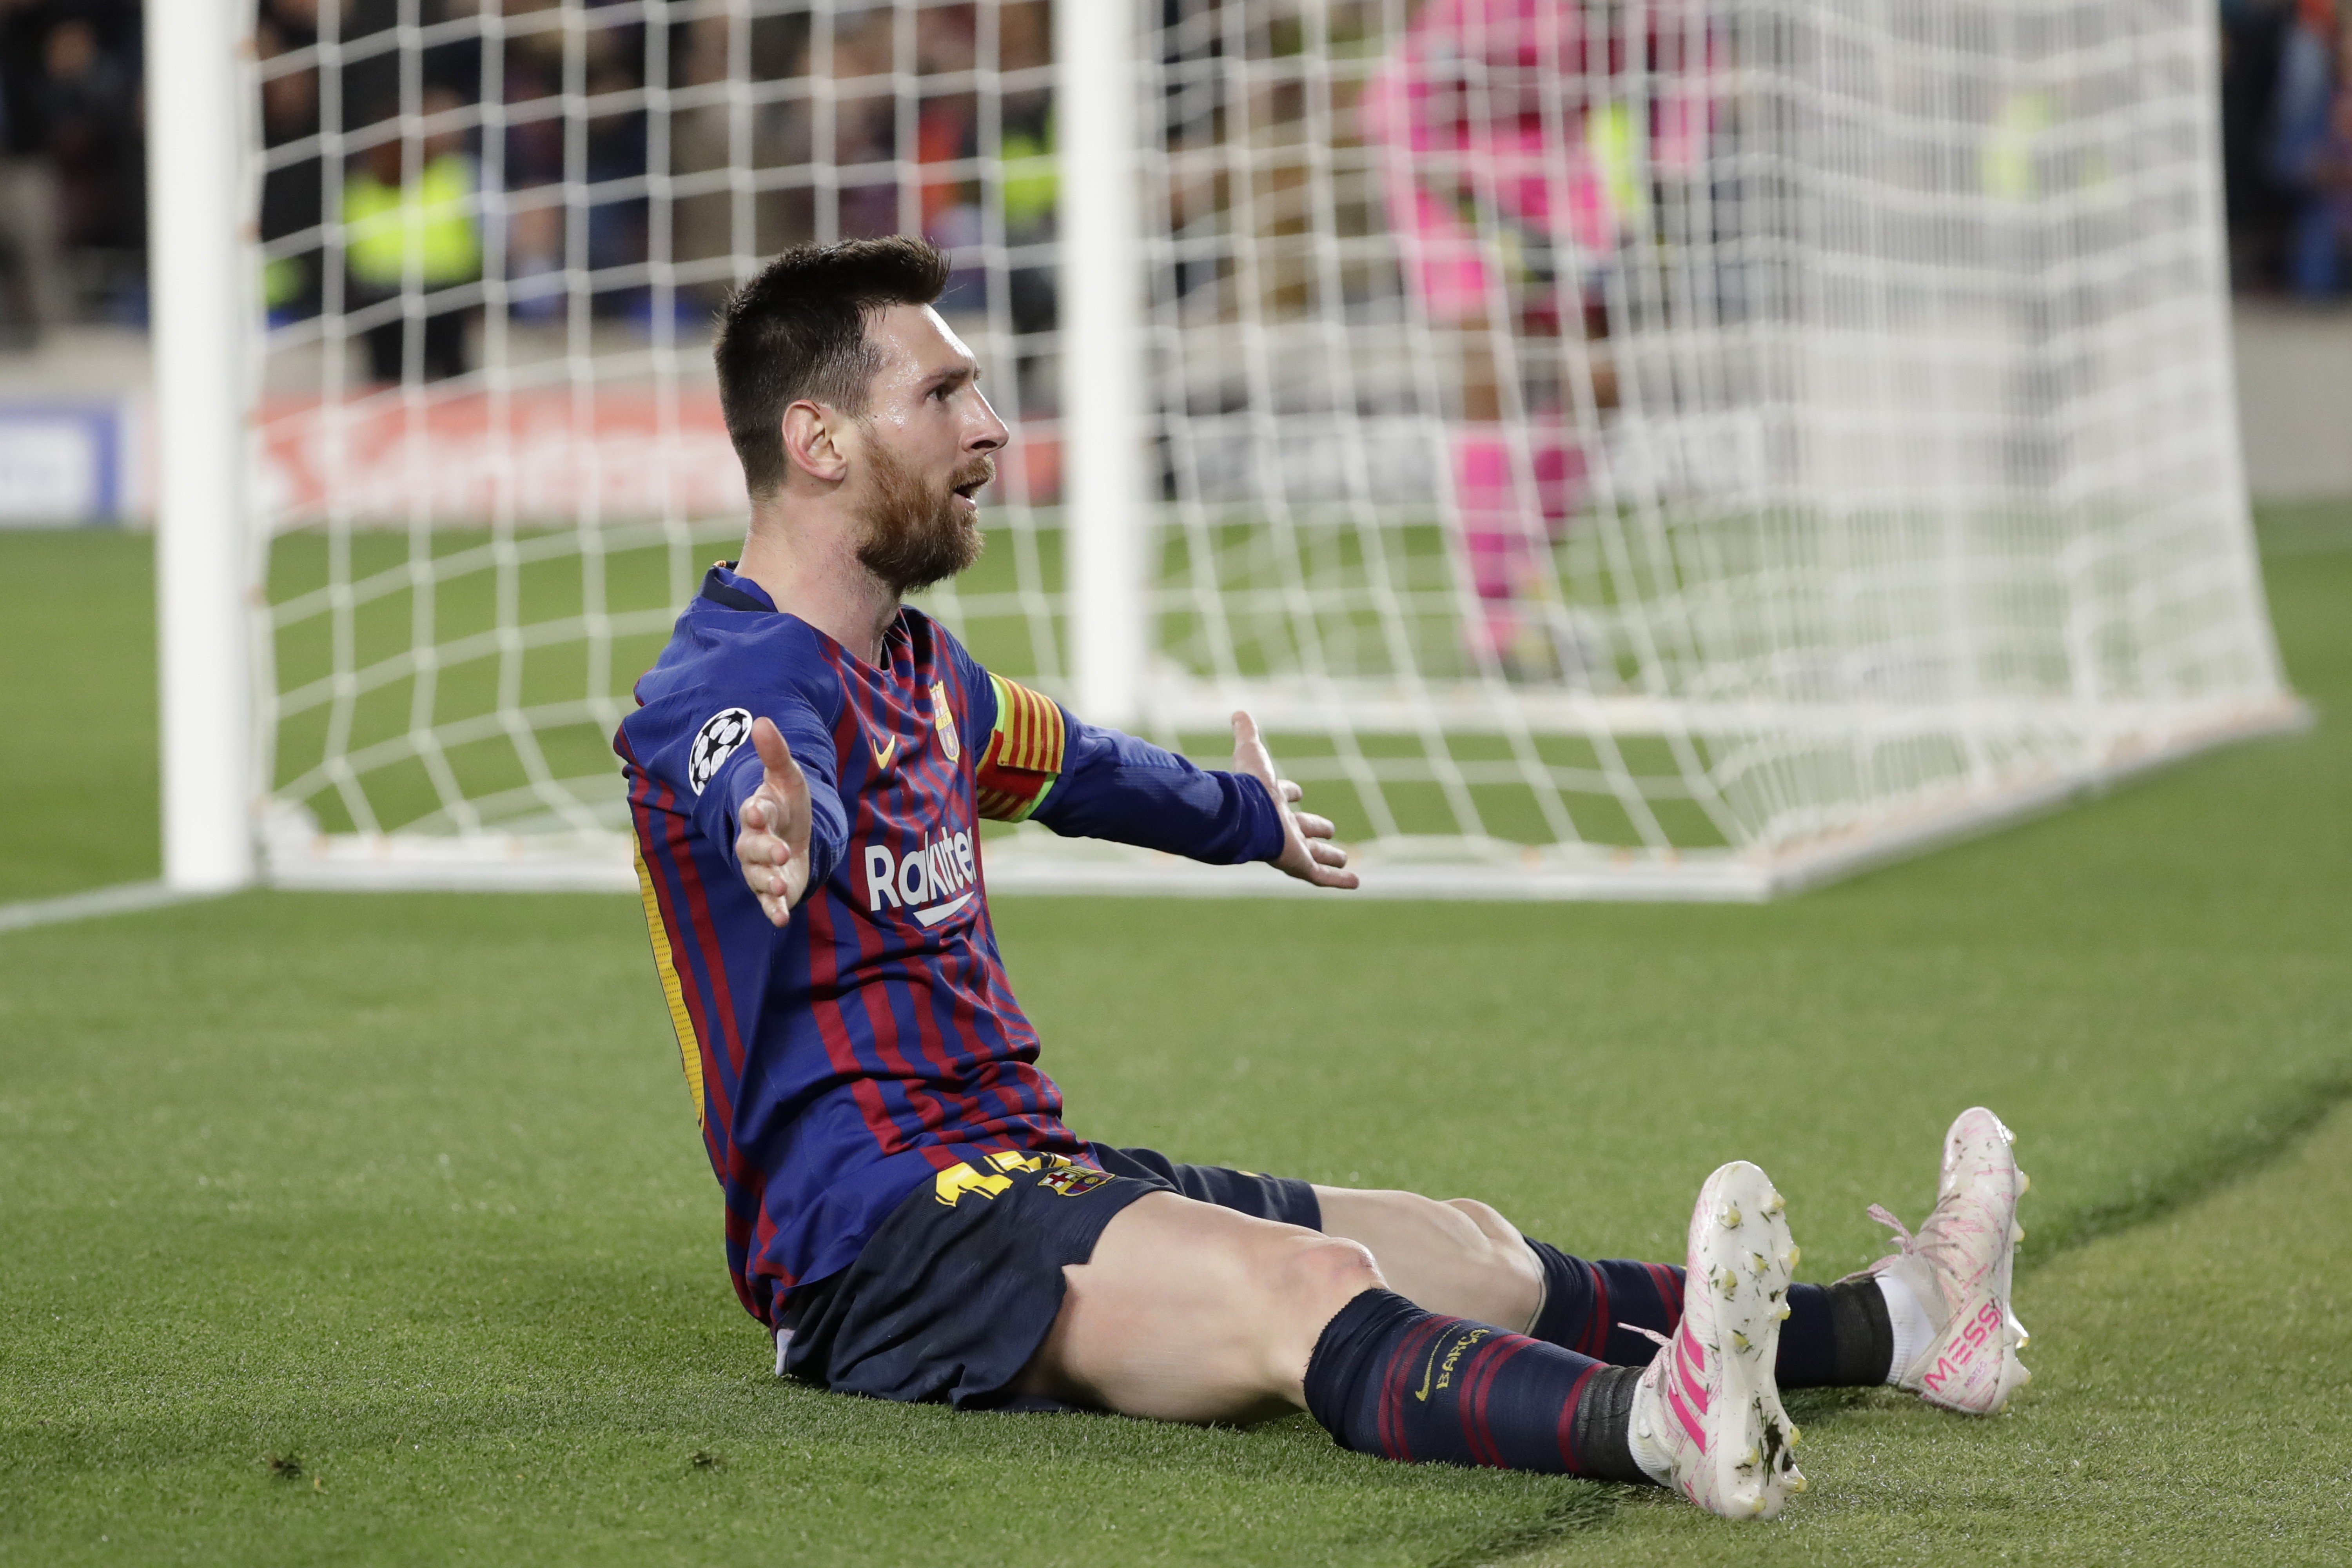 Lionel messis magical free kick against liverpool makes it 600 goals as barcelona fans bow down